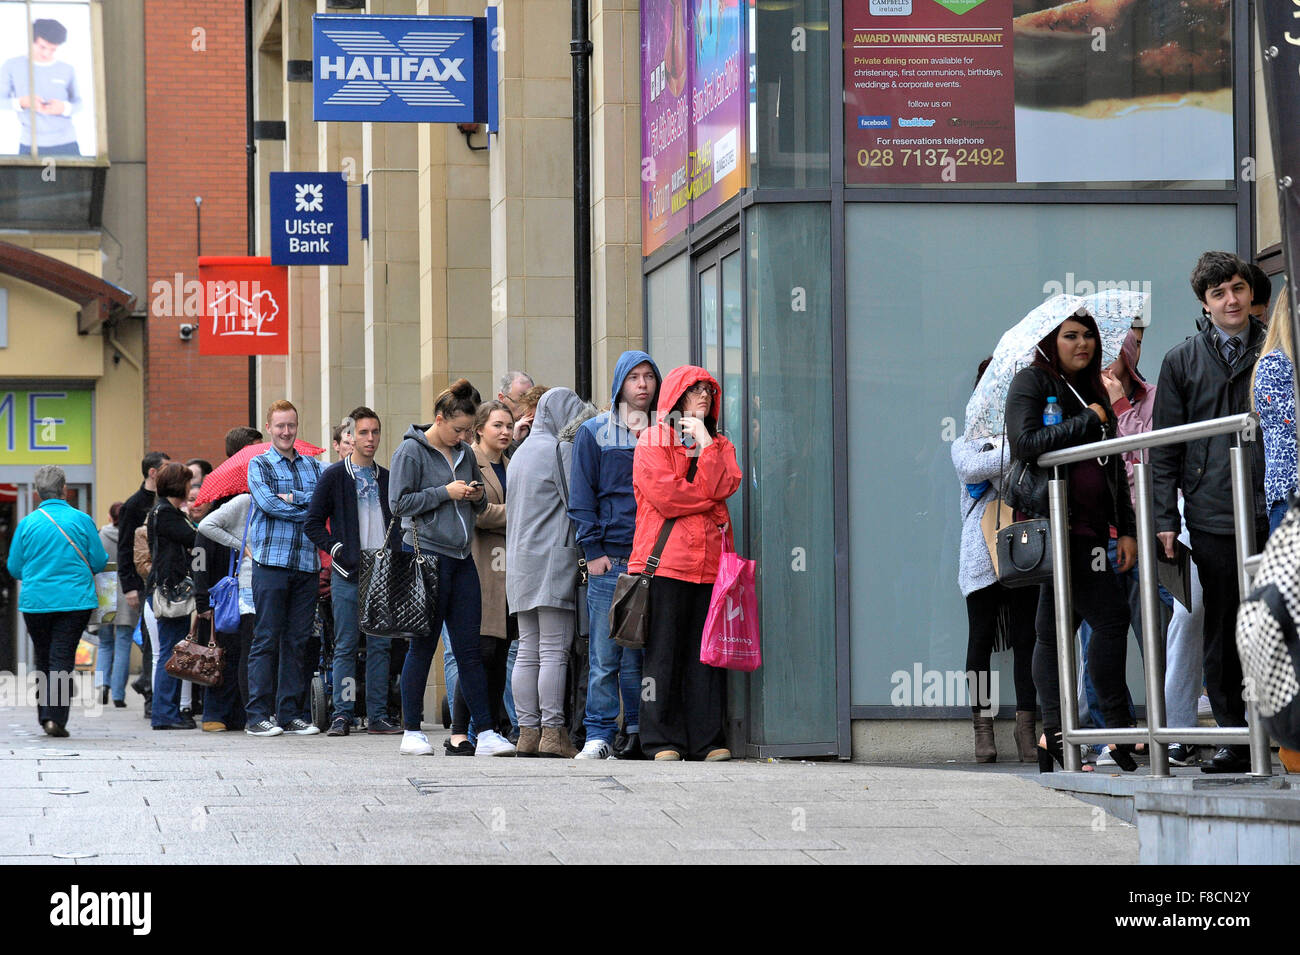 Unemployed queued outside job fair in Londonderry, Northern Ireland - Stock Image